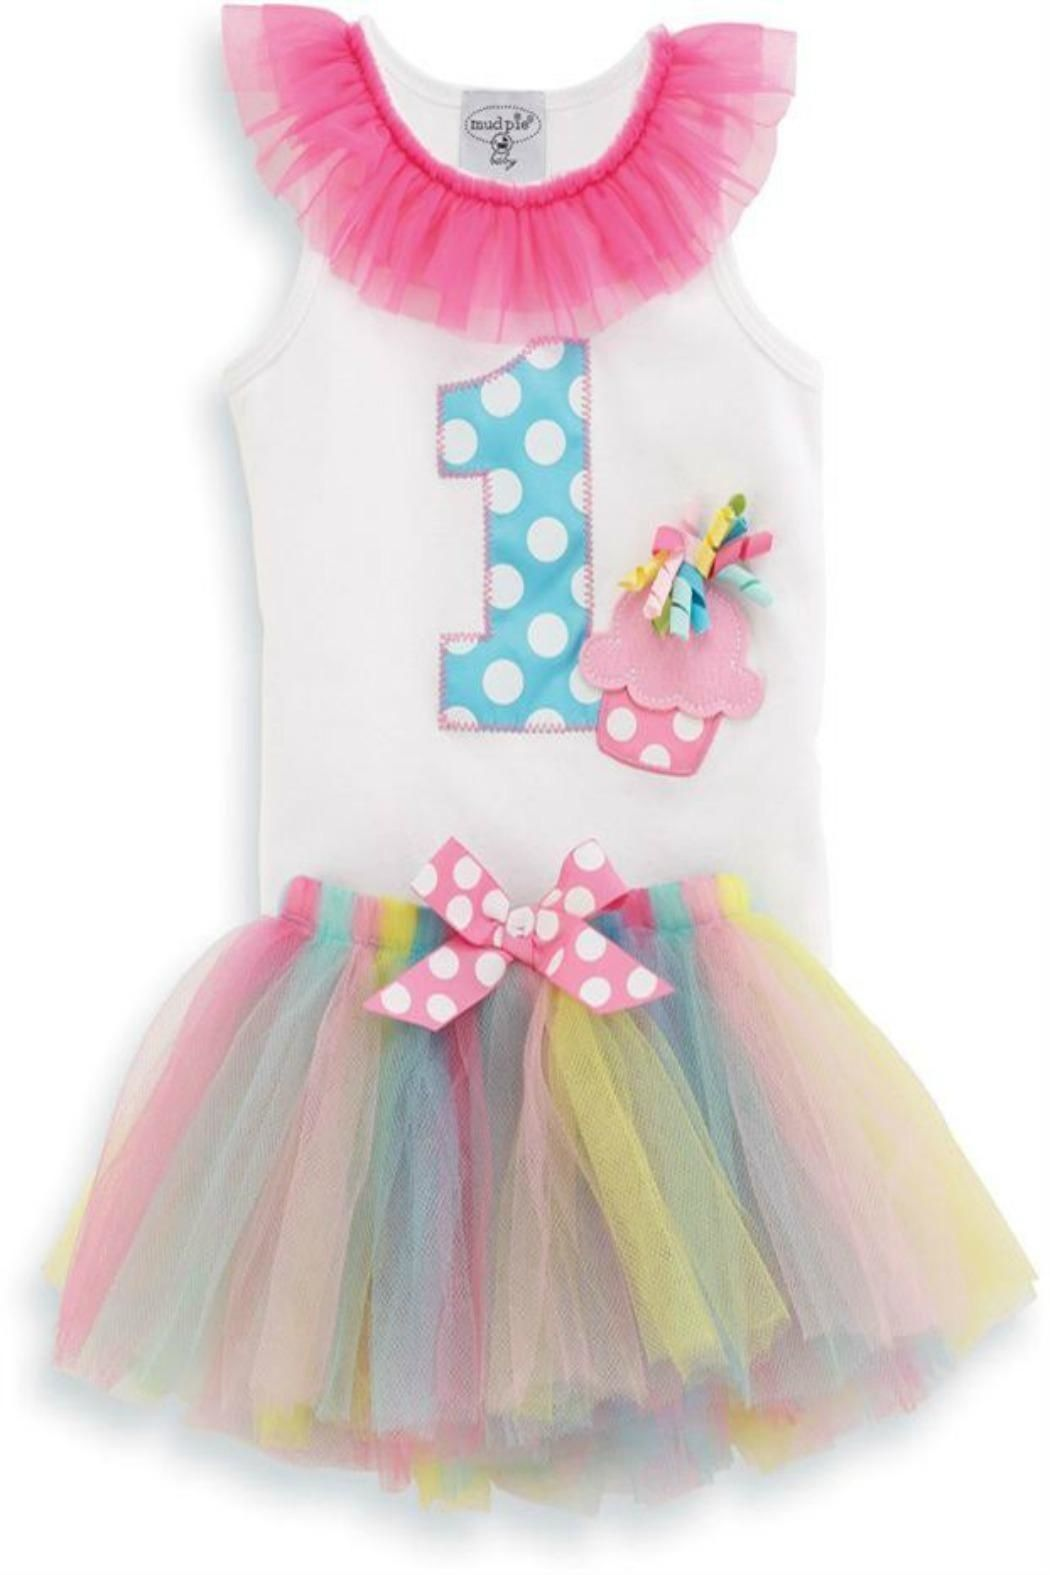 Mud Pie 1st Birthday Tutu Main Image Baby girl first